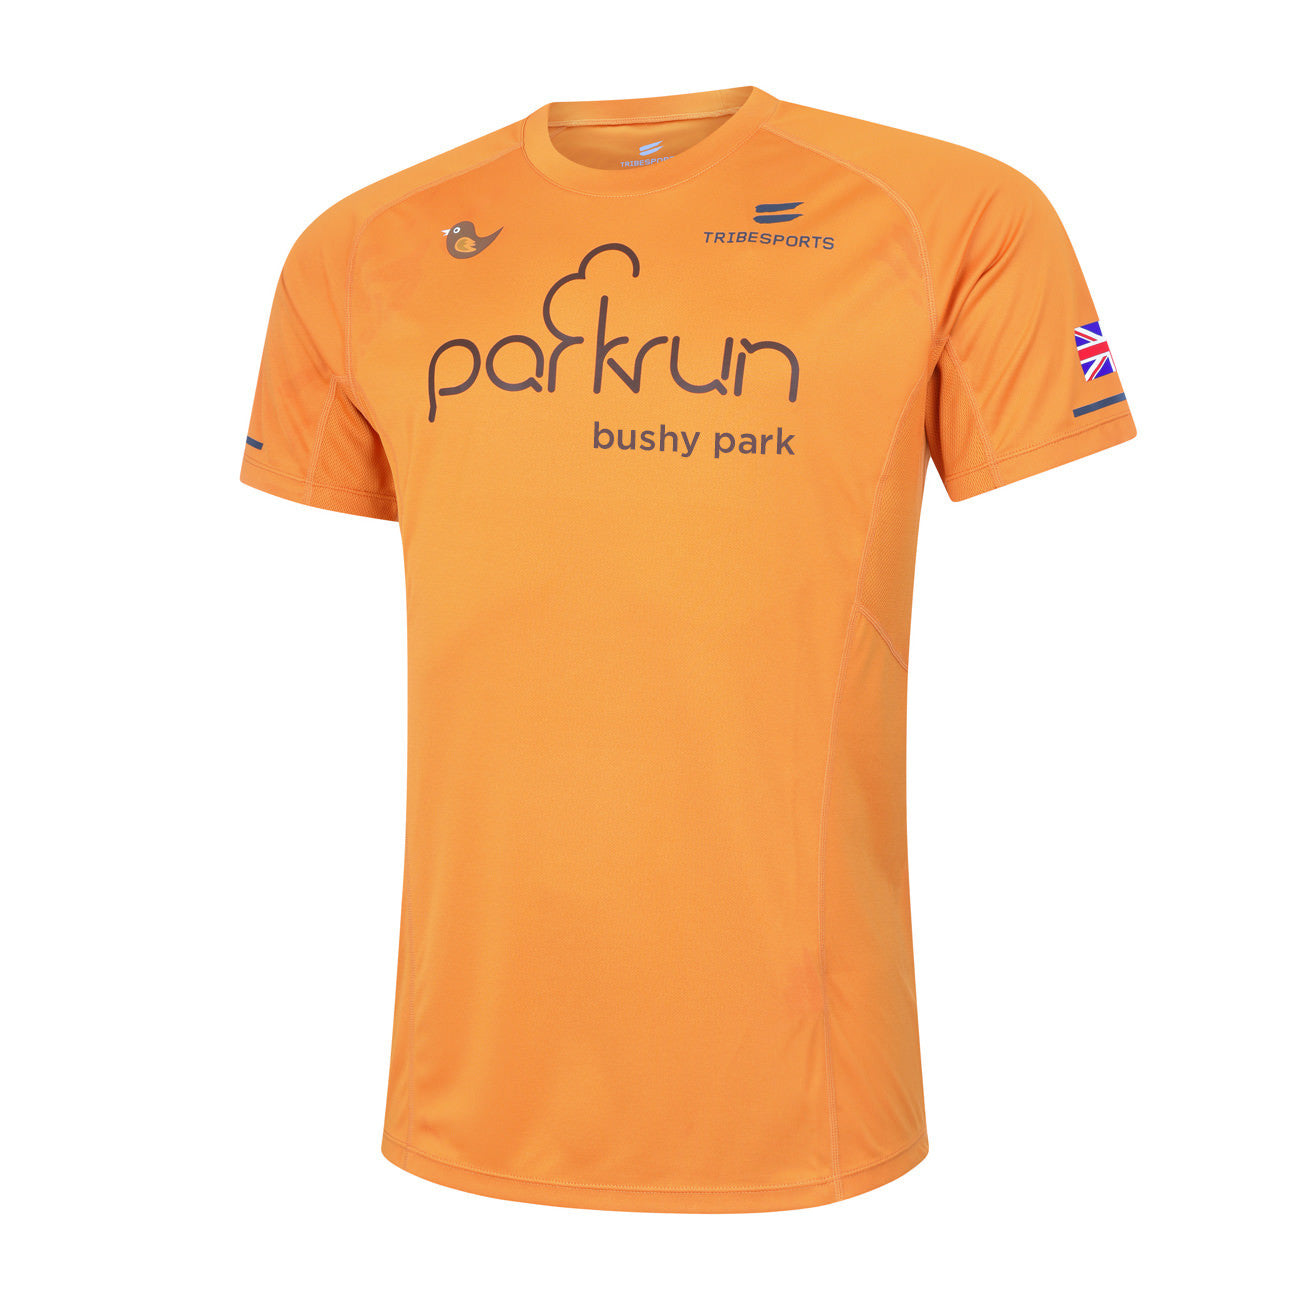 parkrun men's performance short sleeve t-shirt UK , parkrun - 4